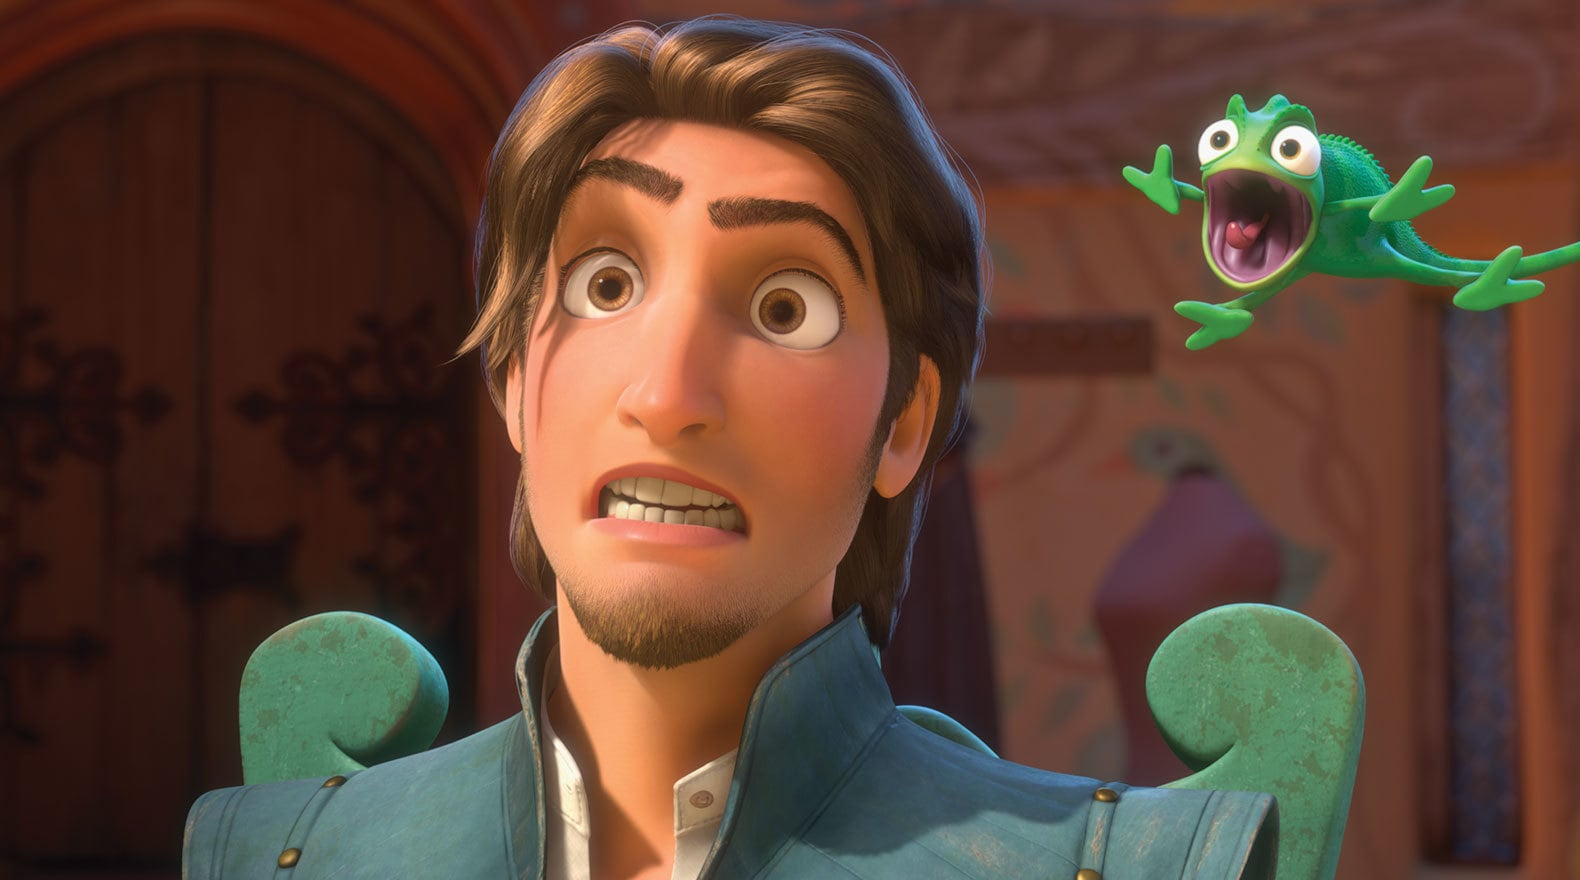 Flynn Rider voiced by Zachary Levi in the movie Tangled